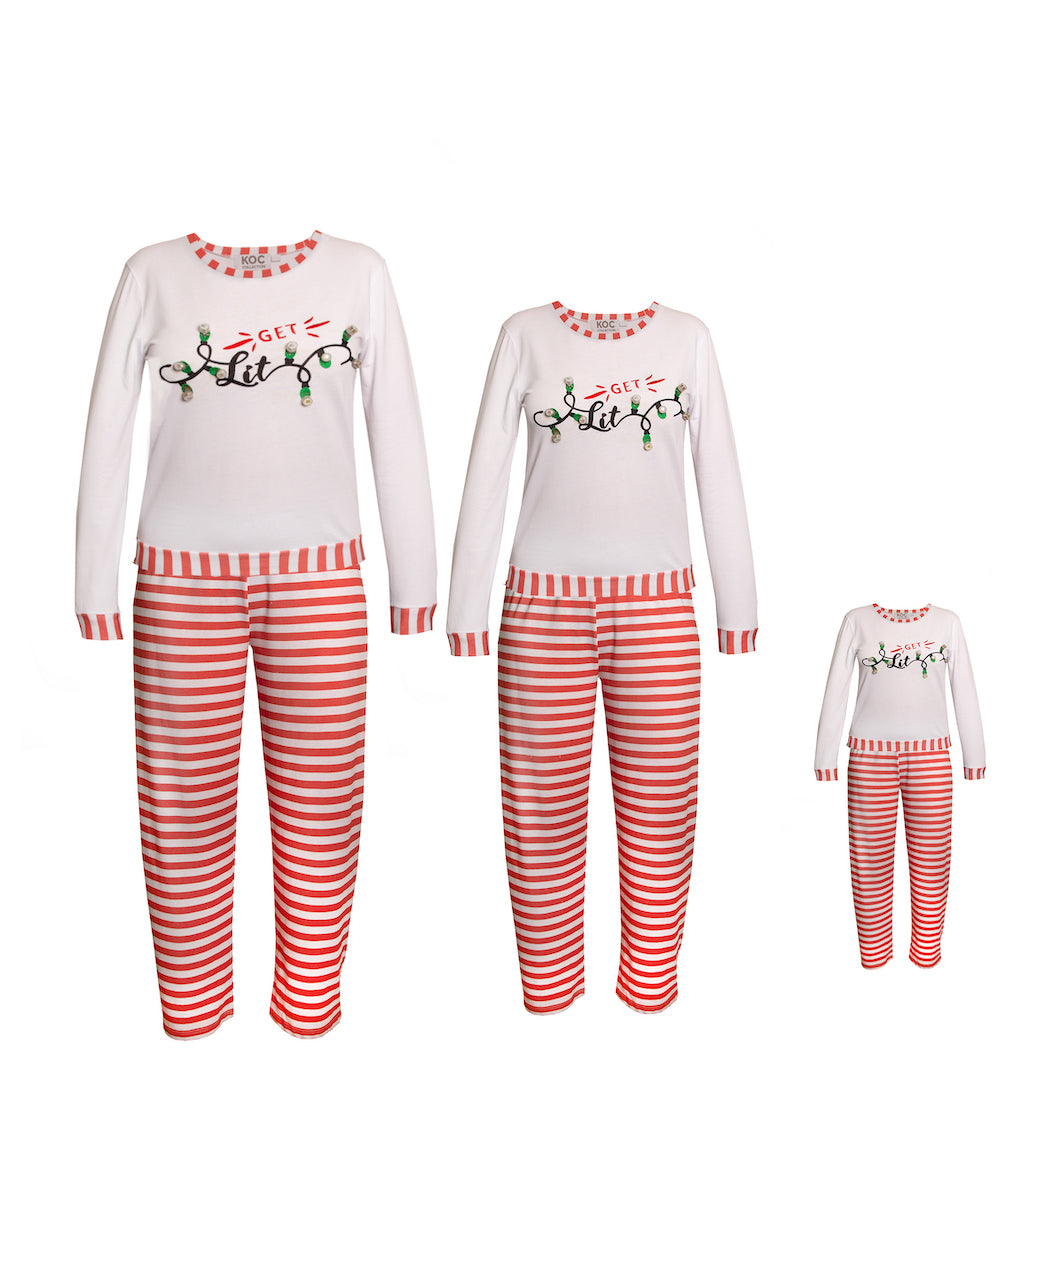 Get Lit Family LED Light Up Pajama Set